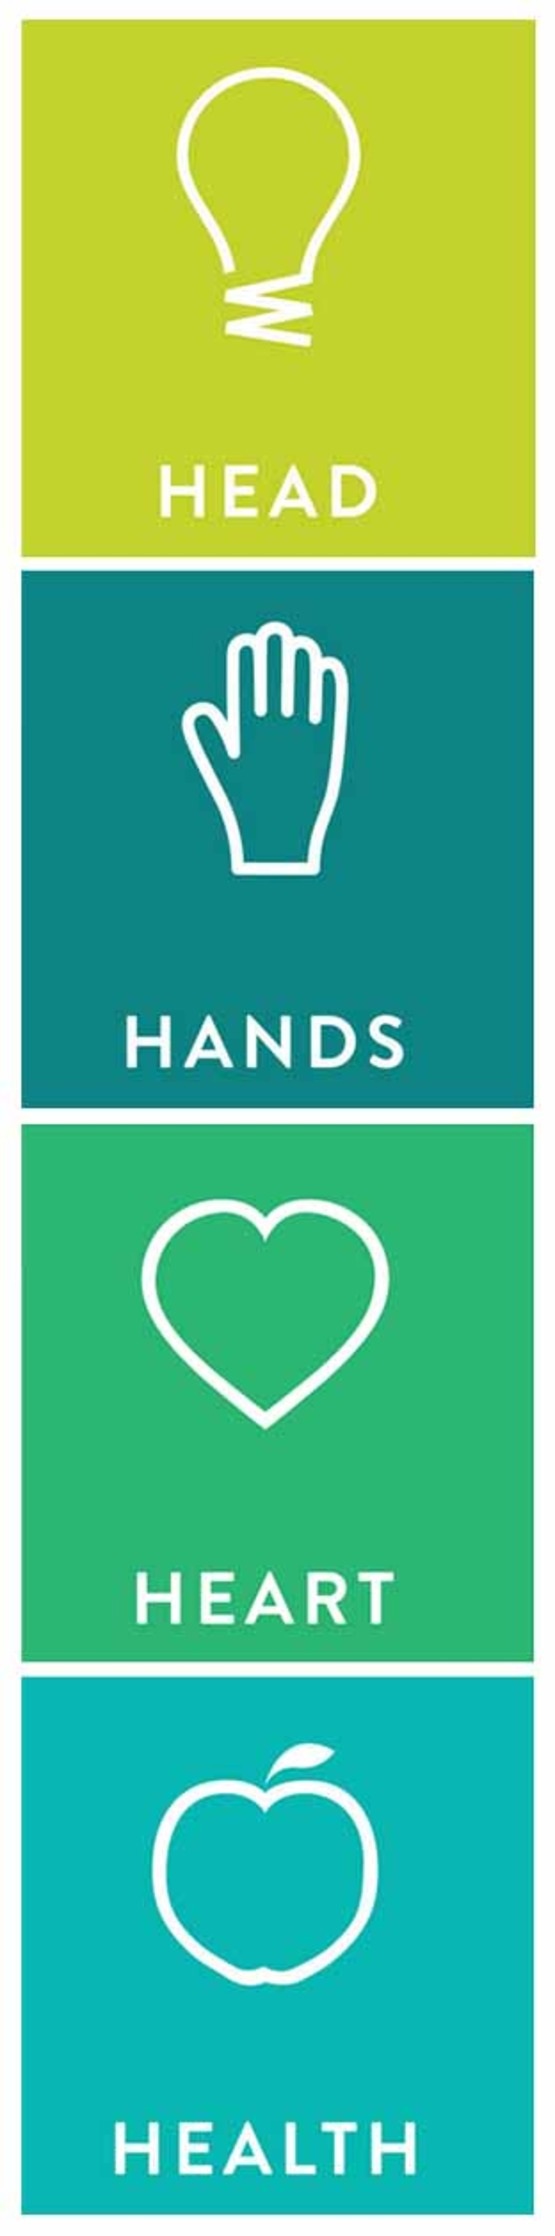 head hands heart health sidebar graphic